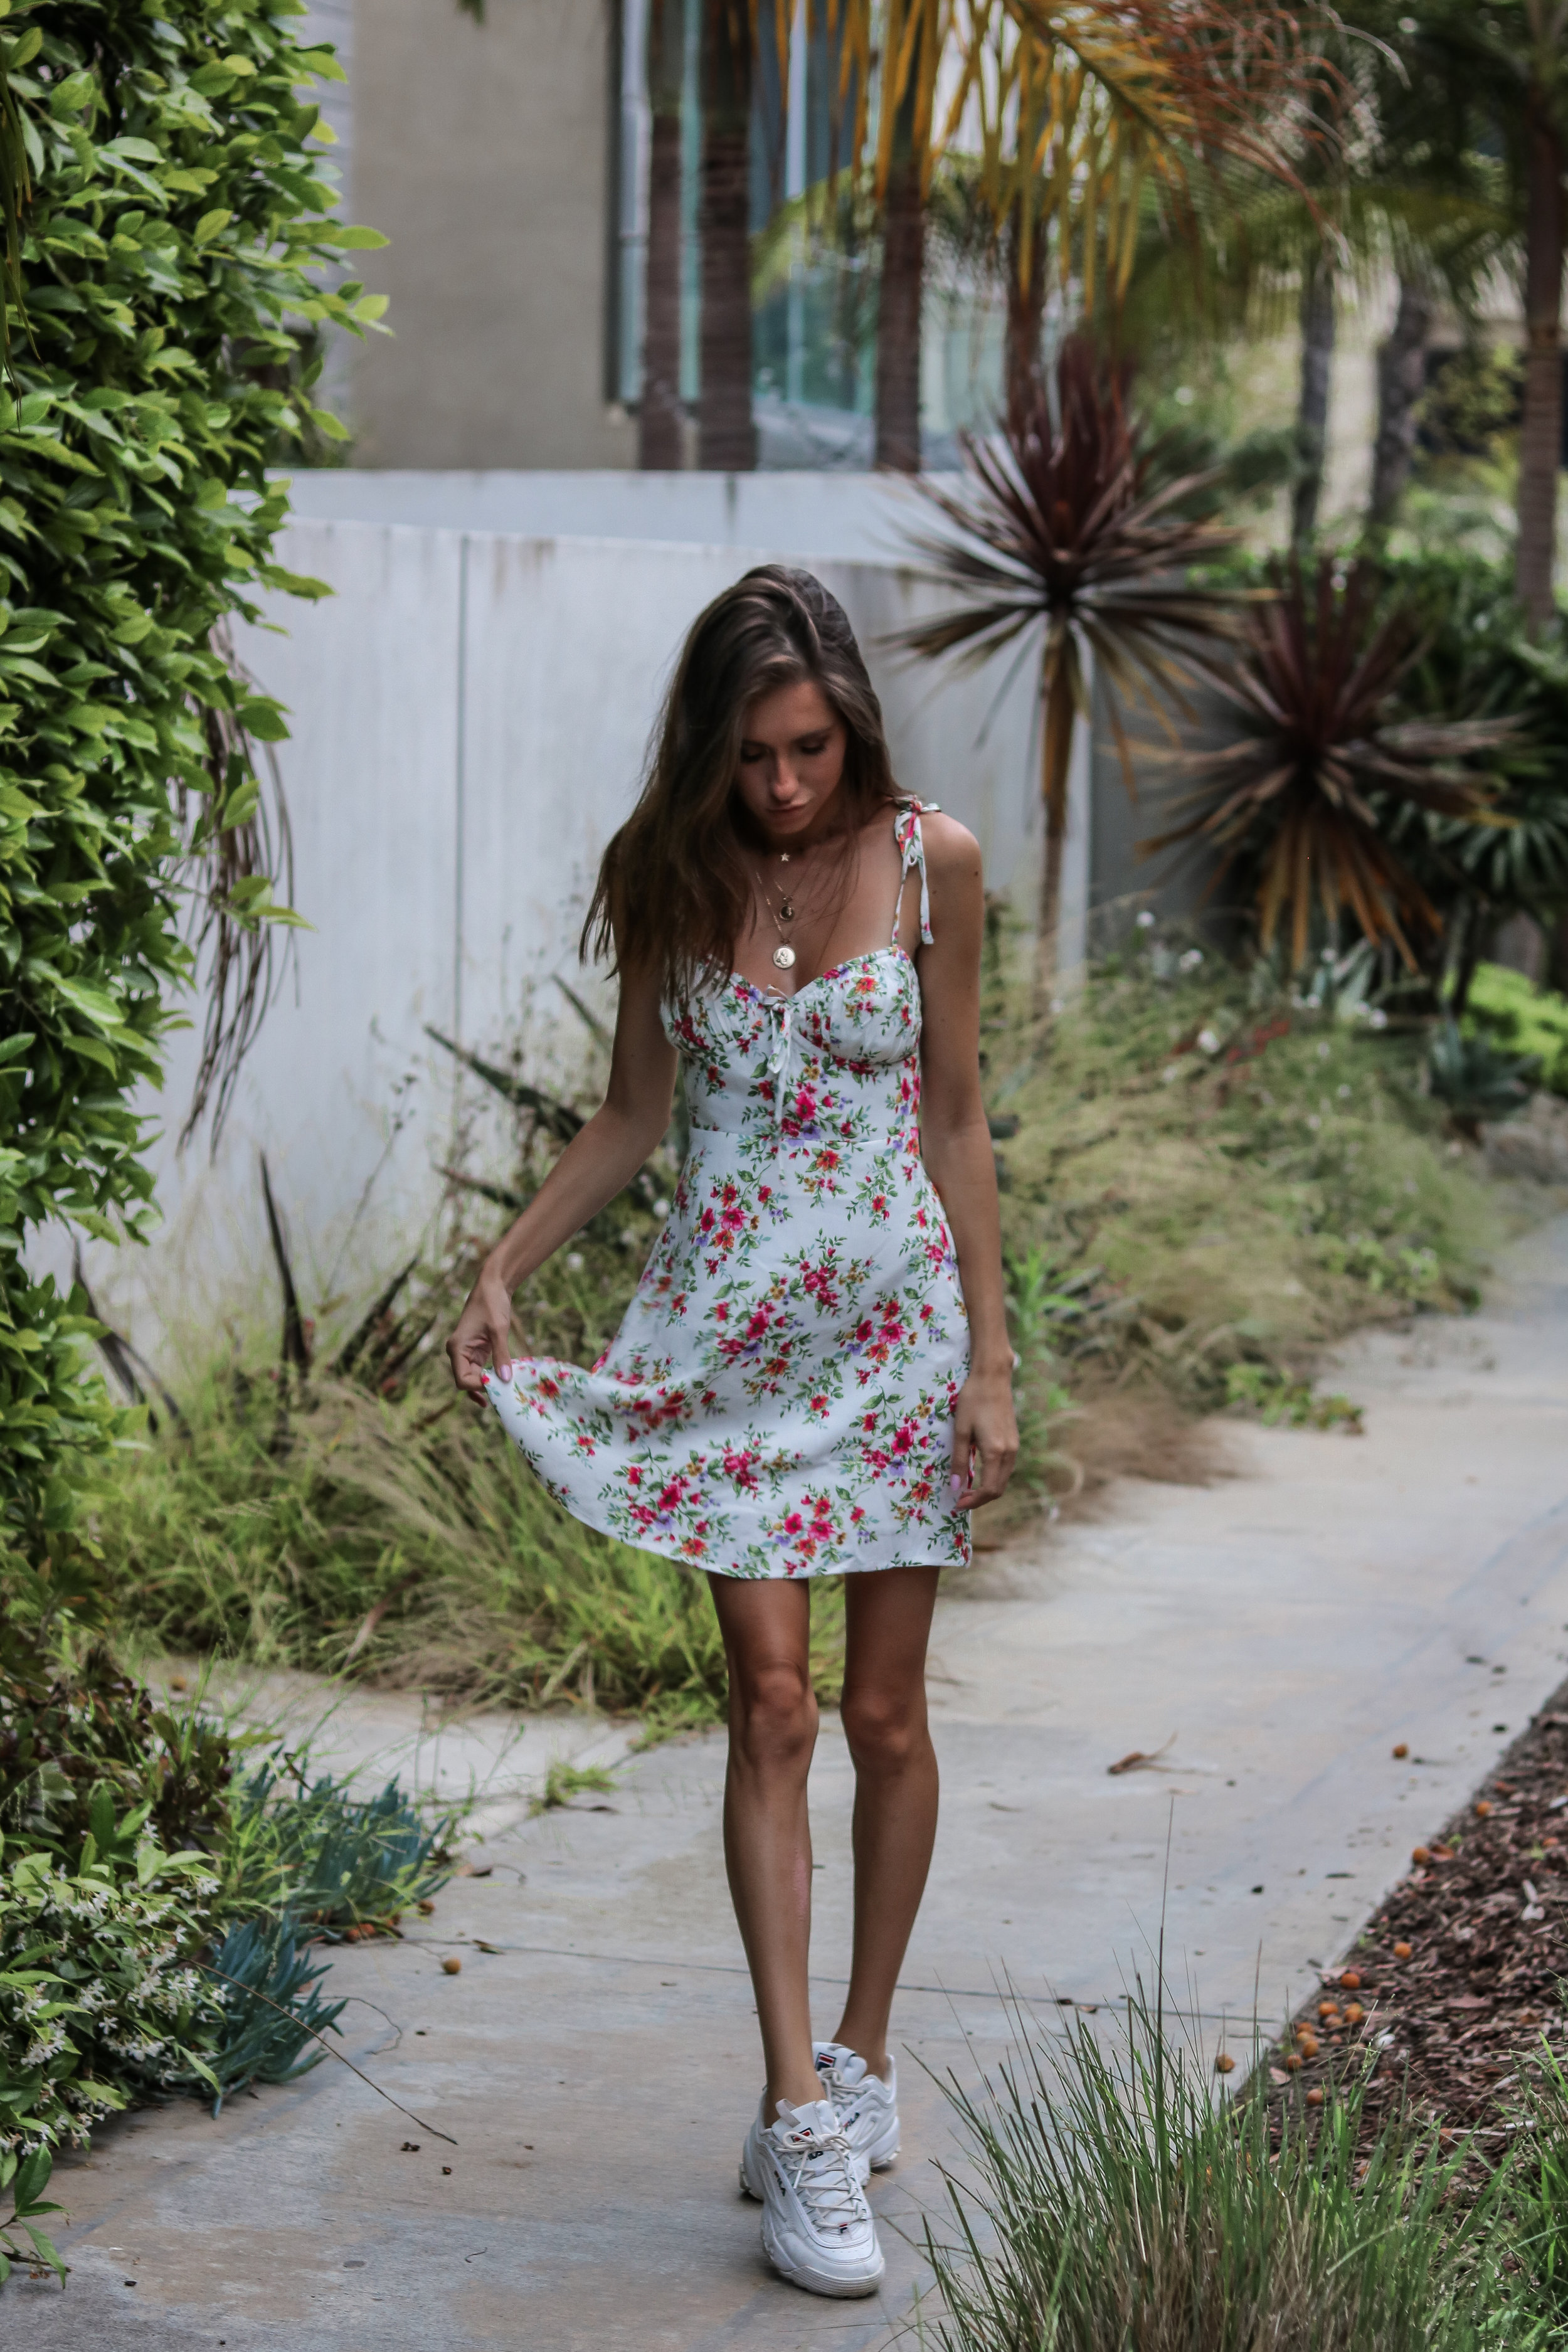 The Hungarian Brunette - The best outfit for summer travel + how to pick the perfect travel dress that will take you anywhere